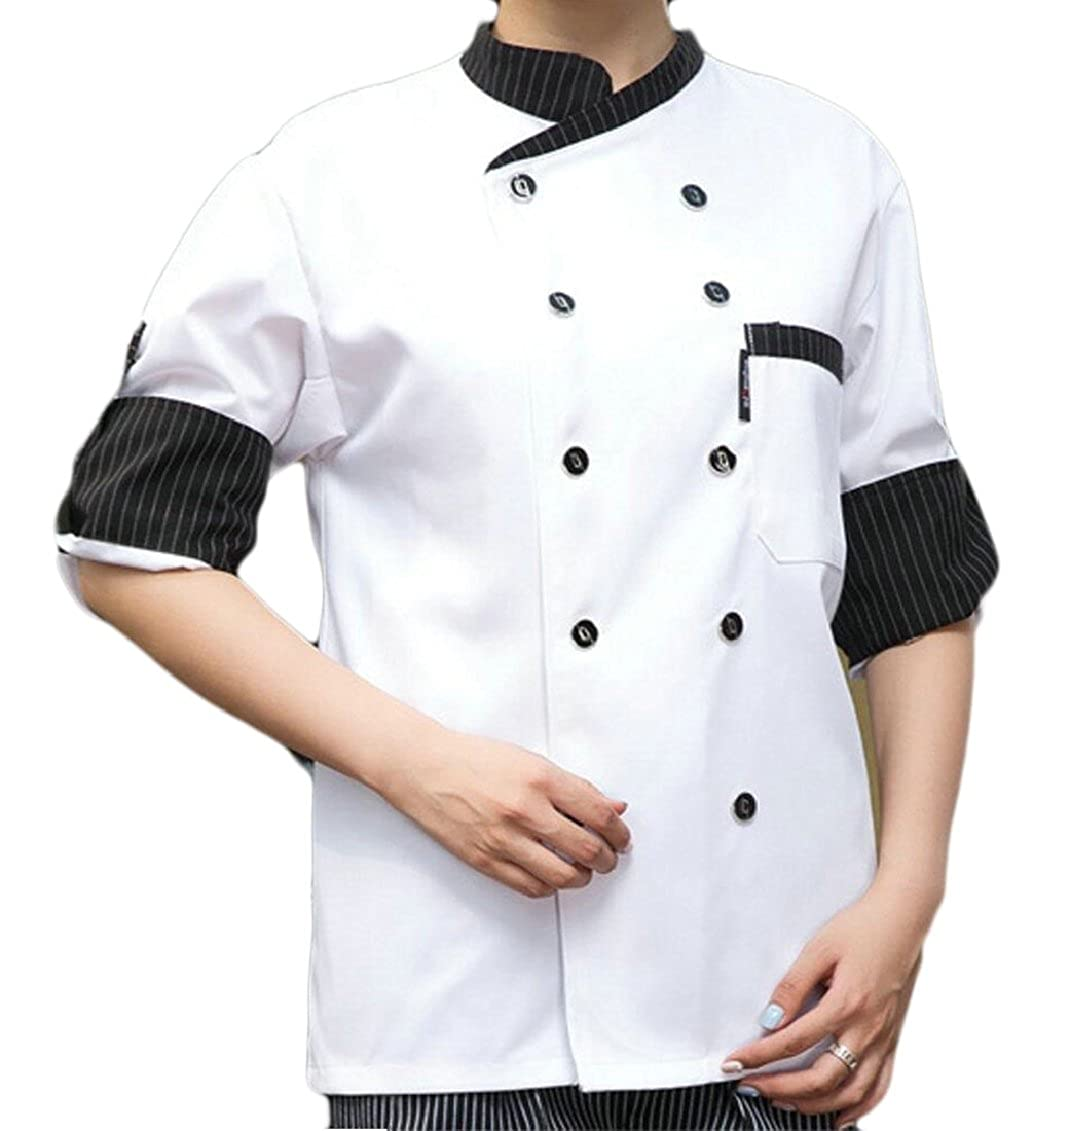 QD-CACA Men's Classic Chef Uniforms Long Sleeve Chefs Work Clothes